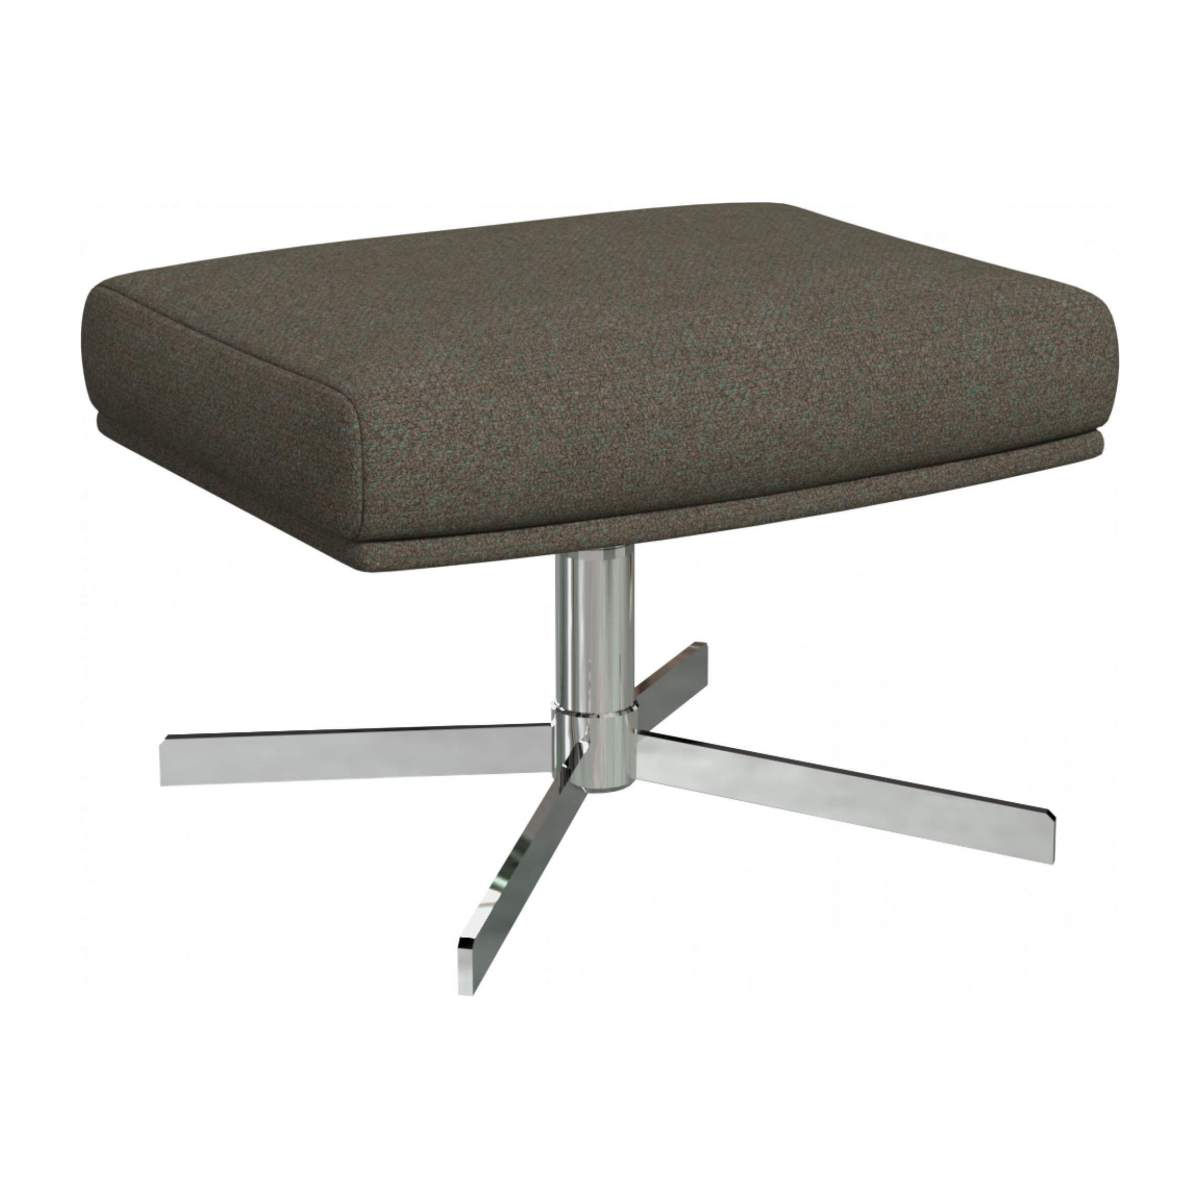 Footstool in Lecce fabric, slade grey with metal cross leg n°2